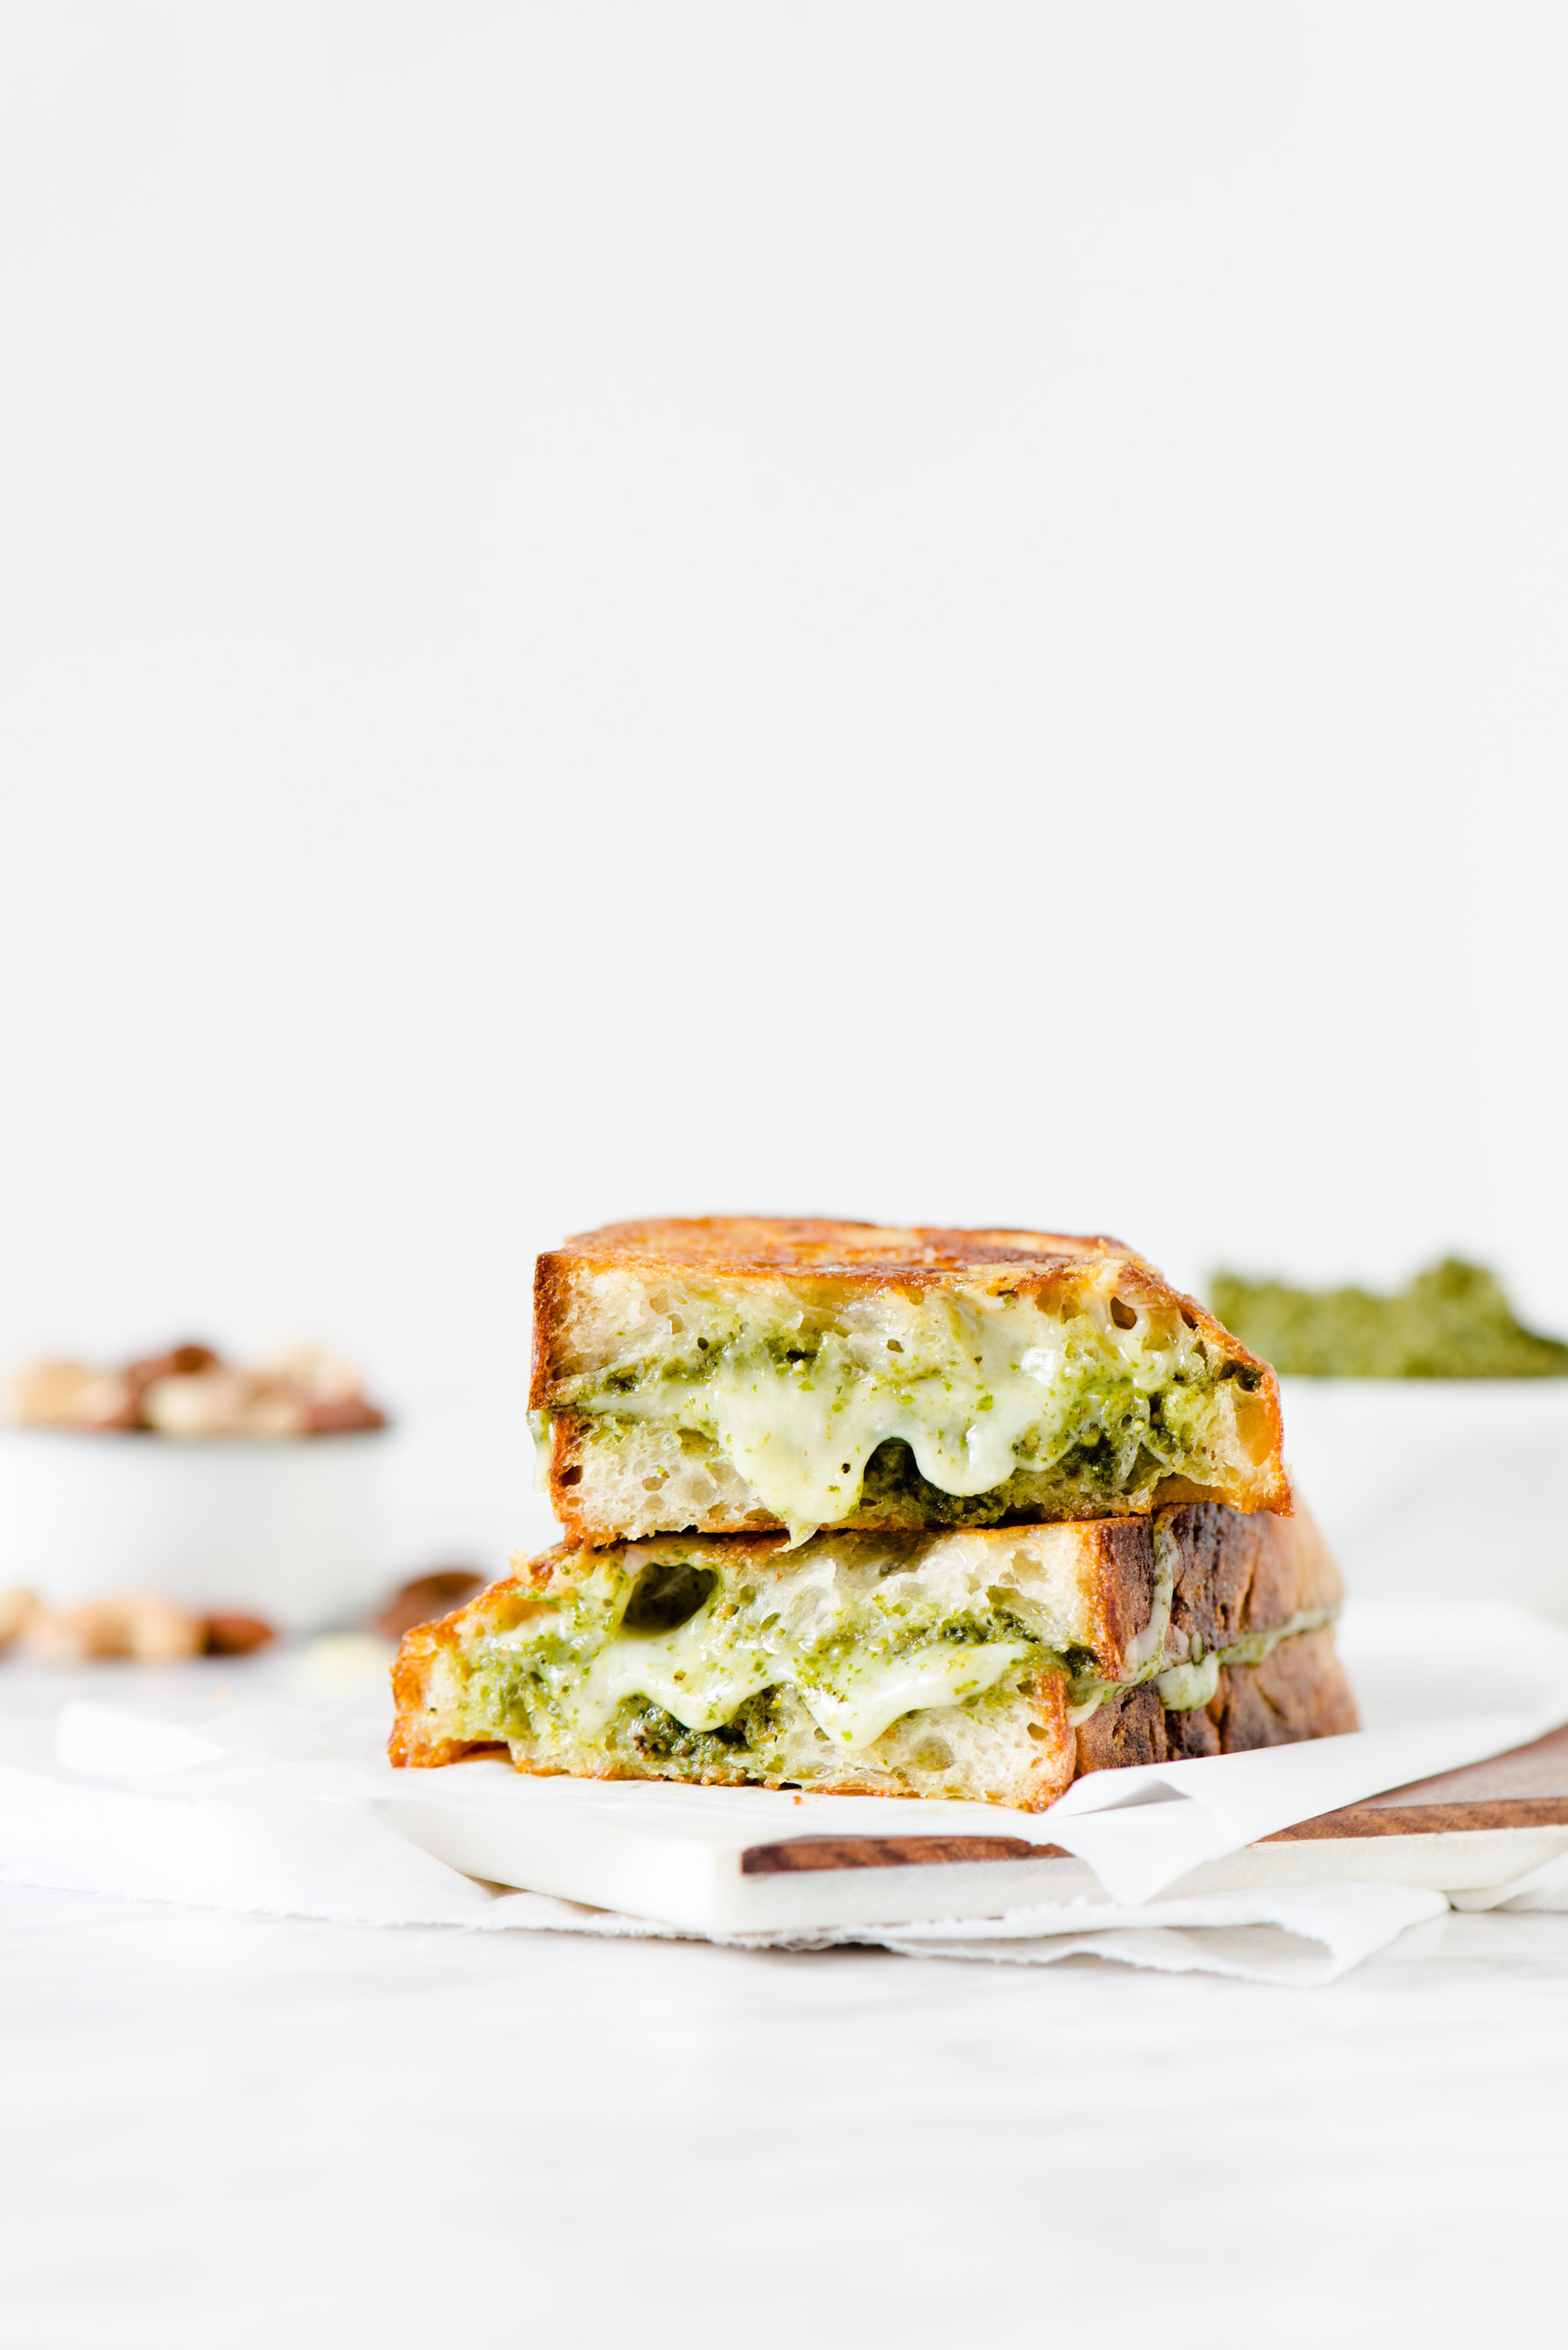 Pesto & Gouda Grilled Cheese - Gooey, herby goodness, sandwiched between two fresh pieces of sourdough bread.